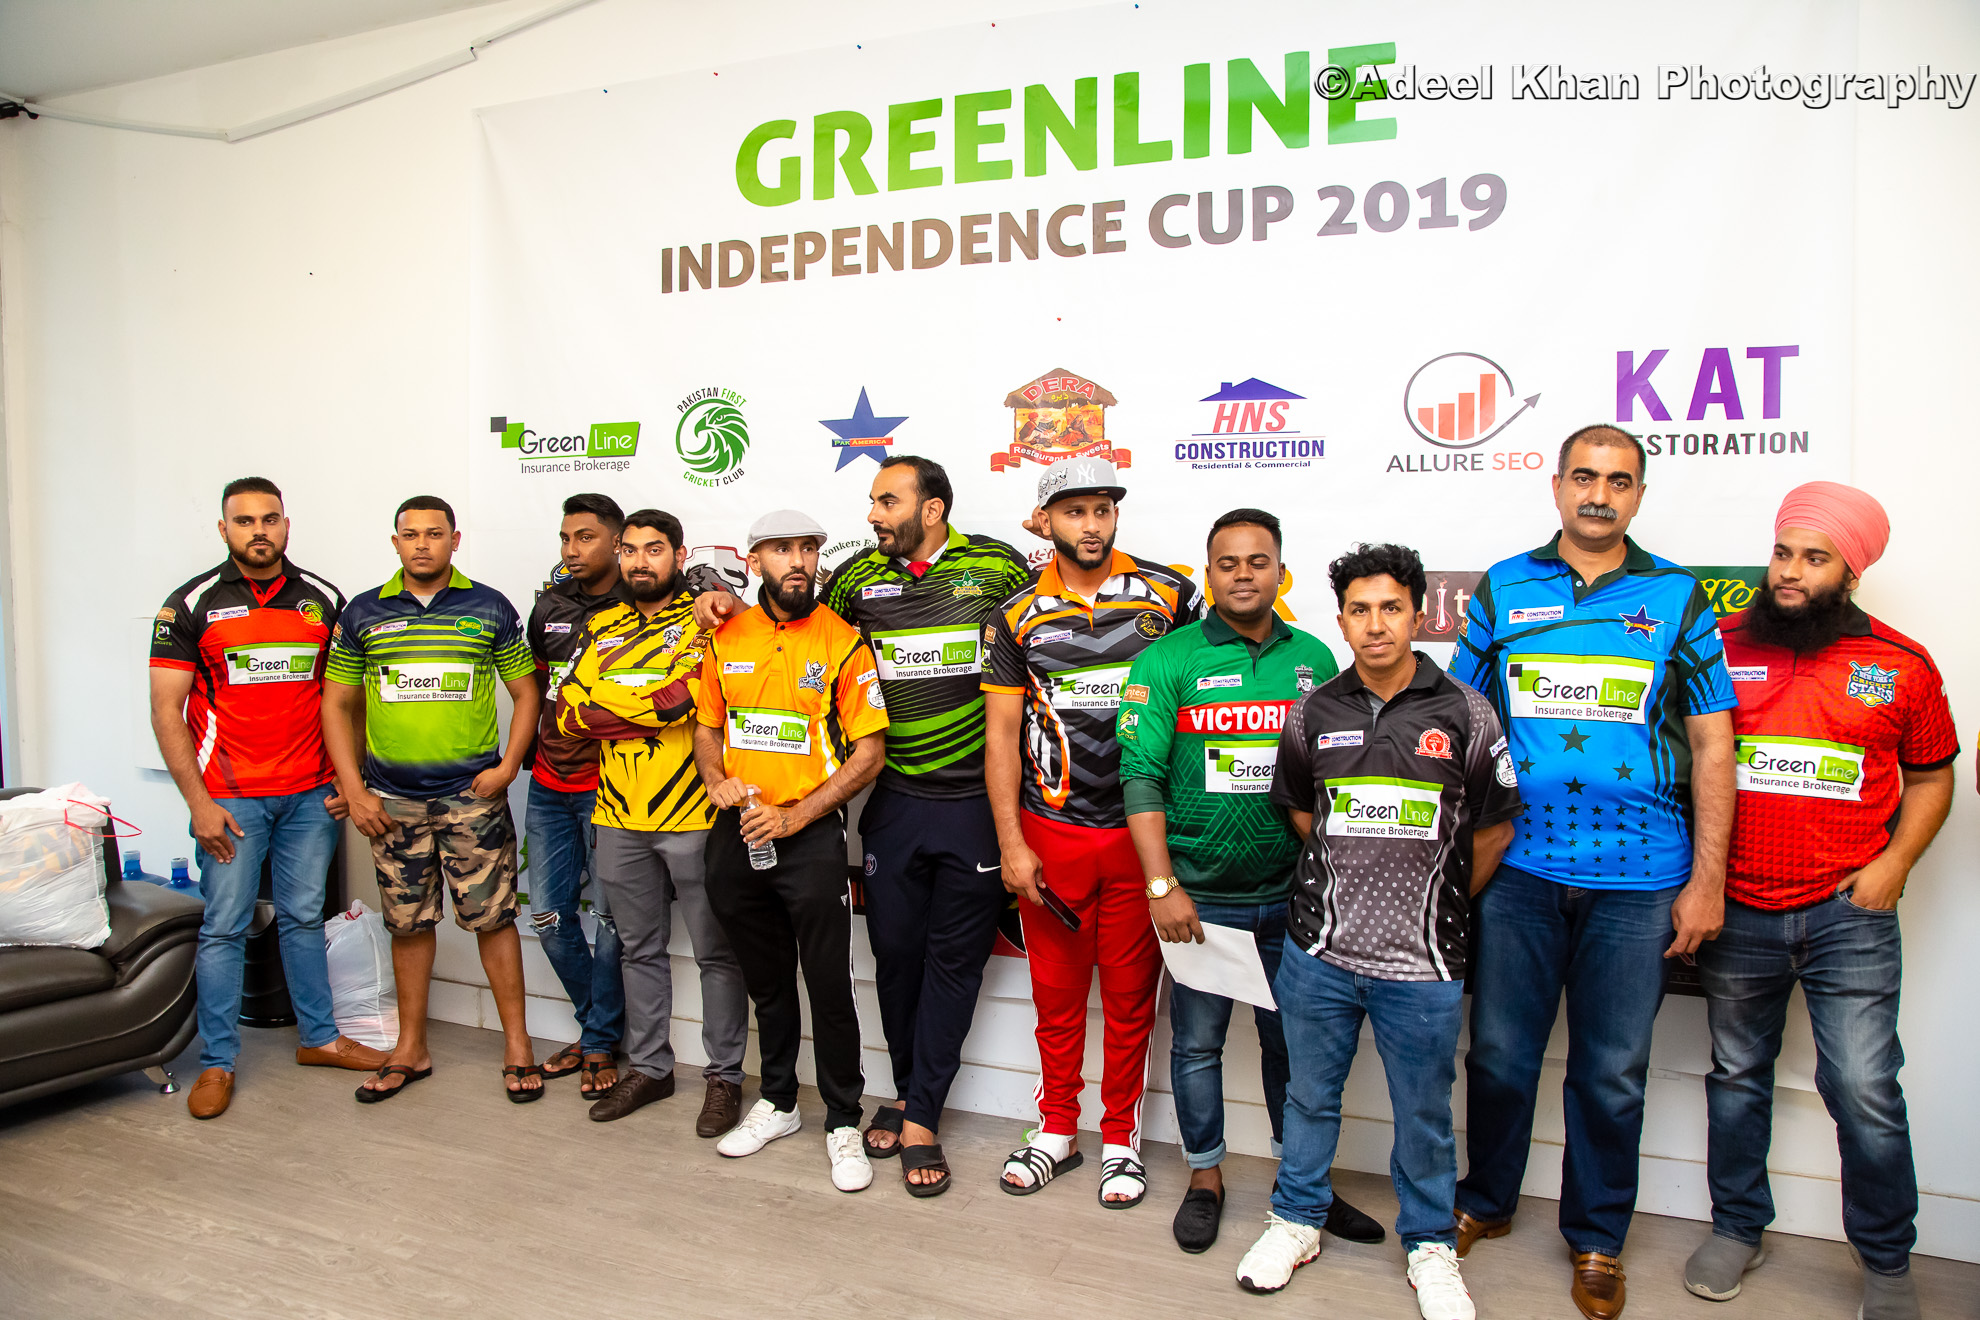 Greenline Independence Cup 2019 Opening Ceremony